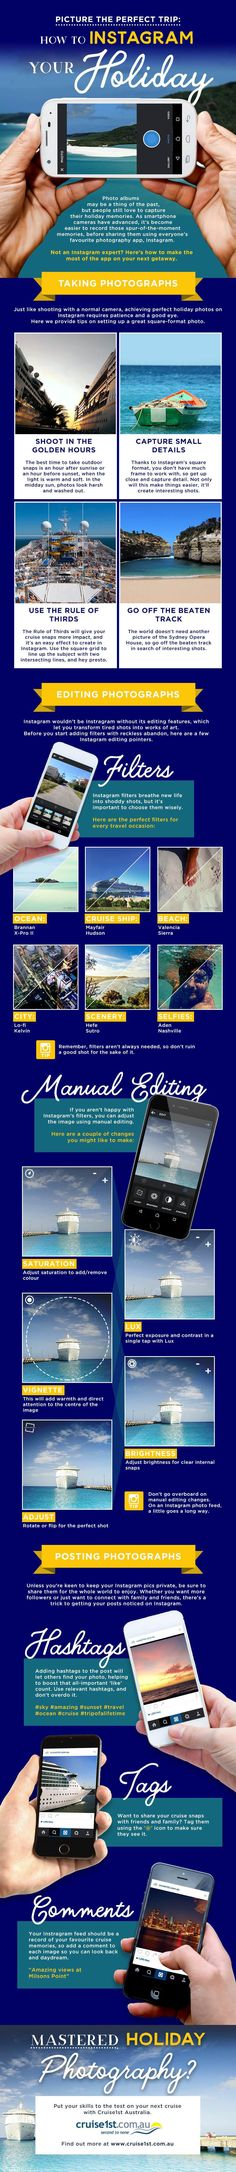 How To Instagram Your Holiday #Infographic #Instagram #SocialMedia